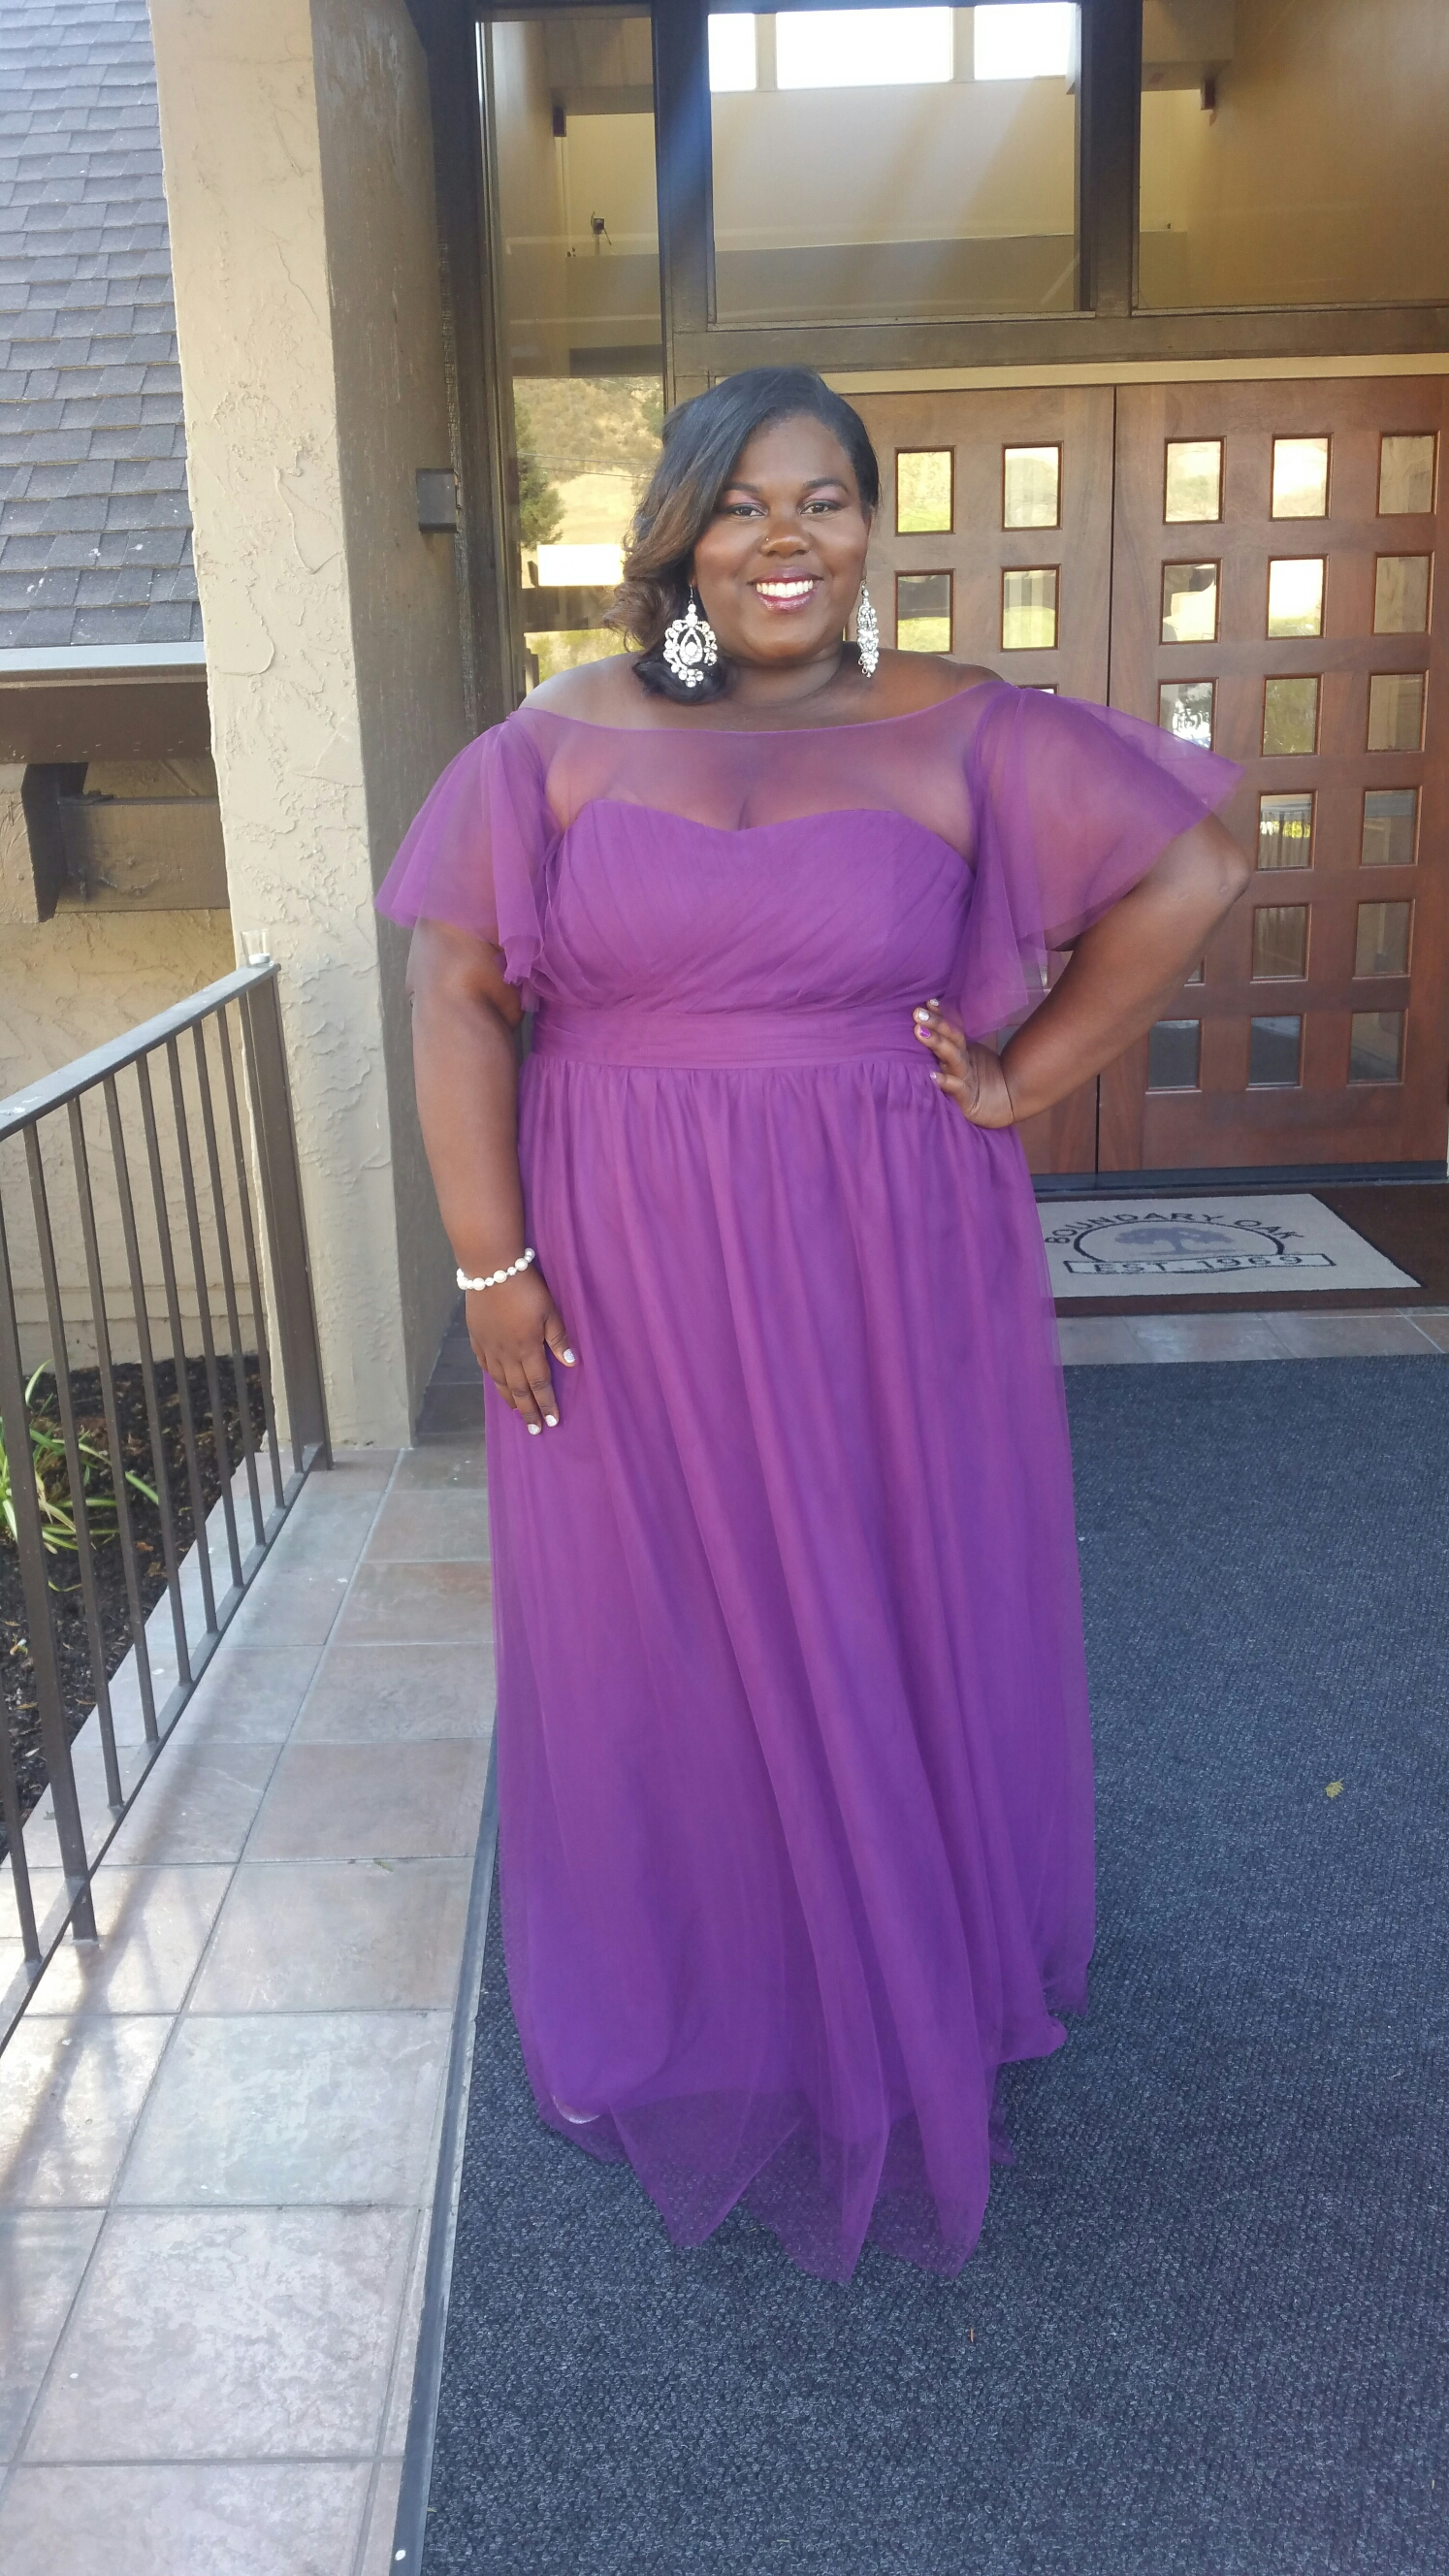 b85802114f656 6 Things A Plus Size Bridesmaid Needs to know About Dresses